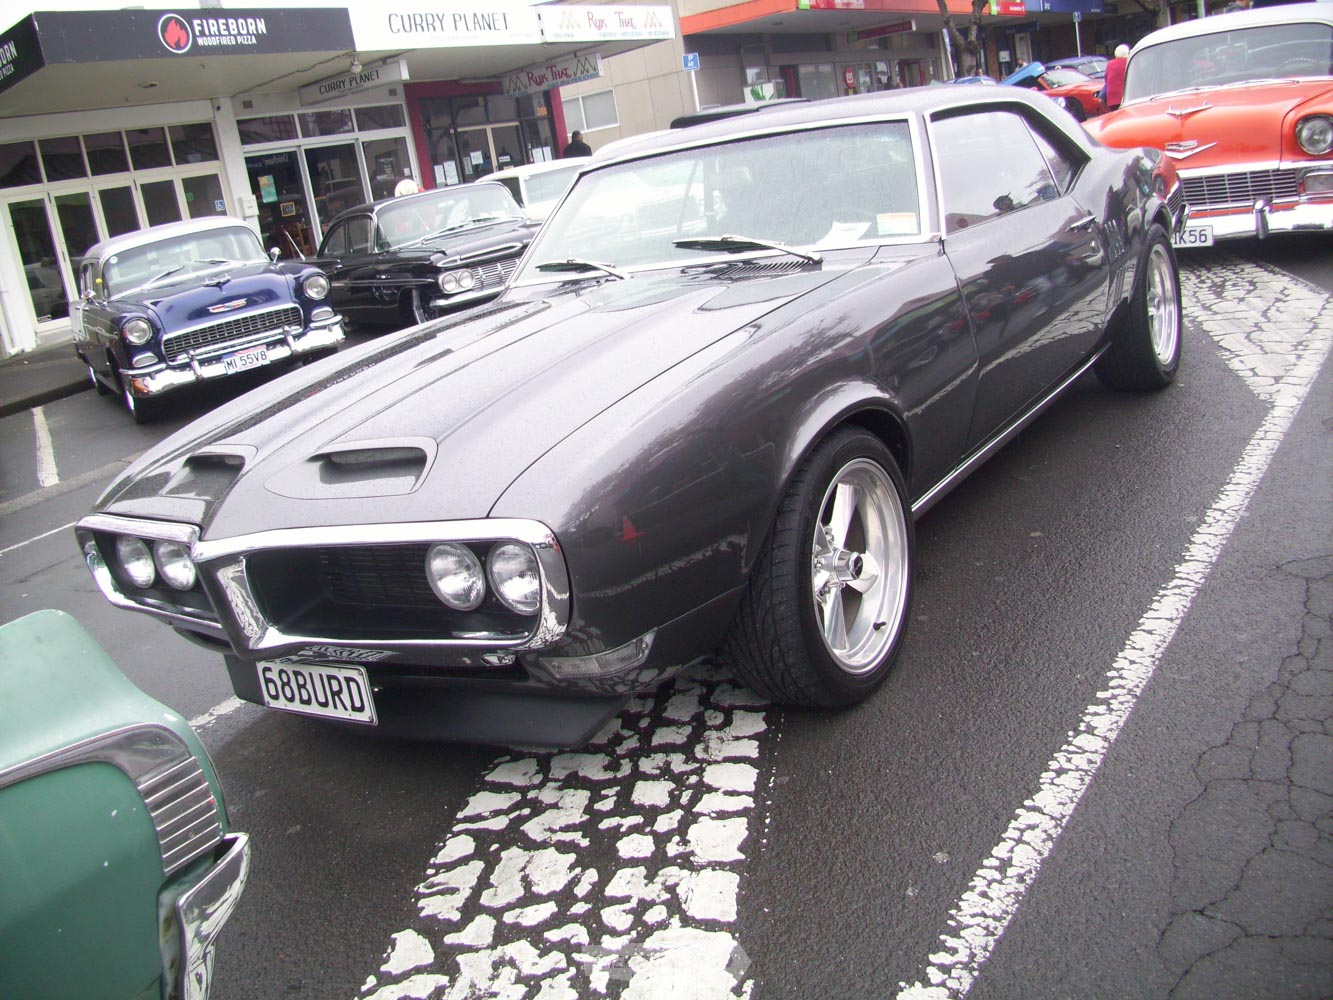 Alan Hunt from Ohauiti in Tauranga has owned this 1968 Pontiac Firebird for many years. Its a real tidy_.jpg